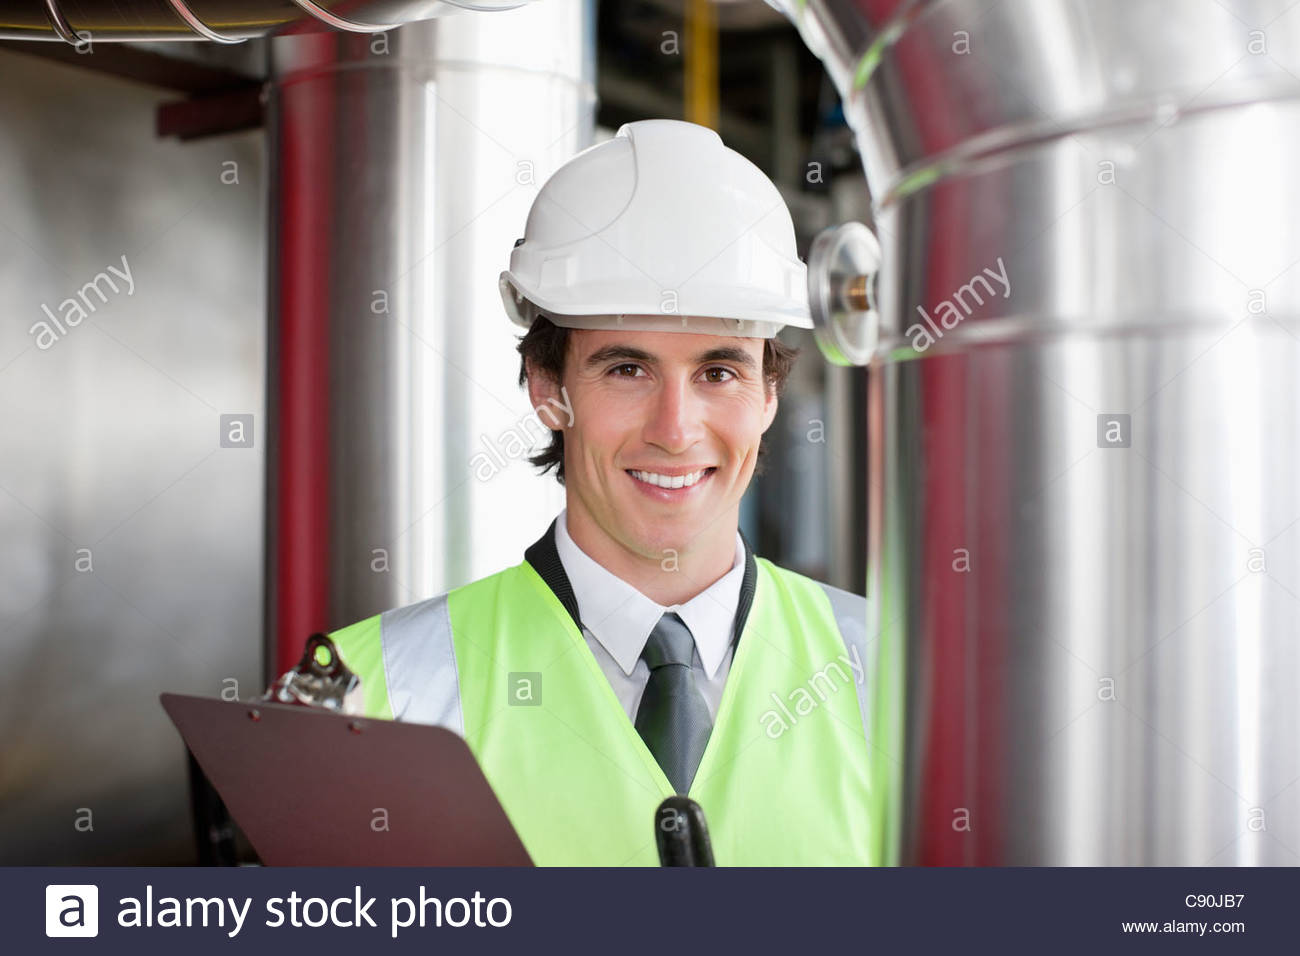 Businessman in safety gear examining pipes - Stock Image